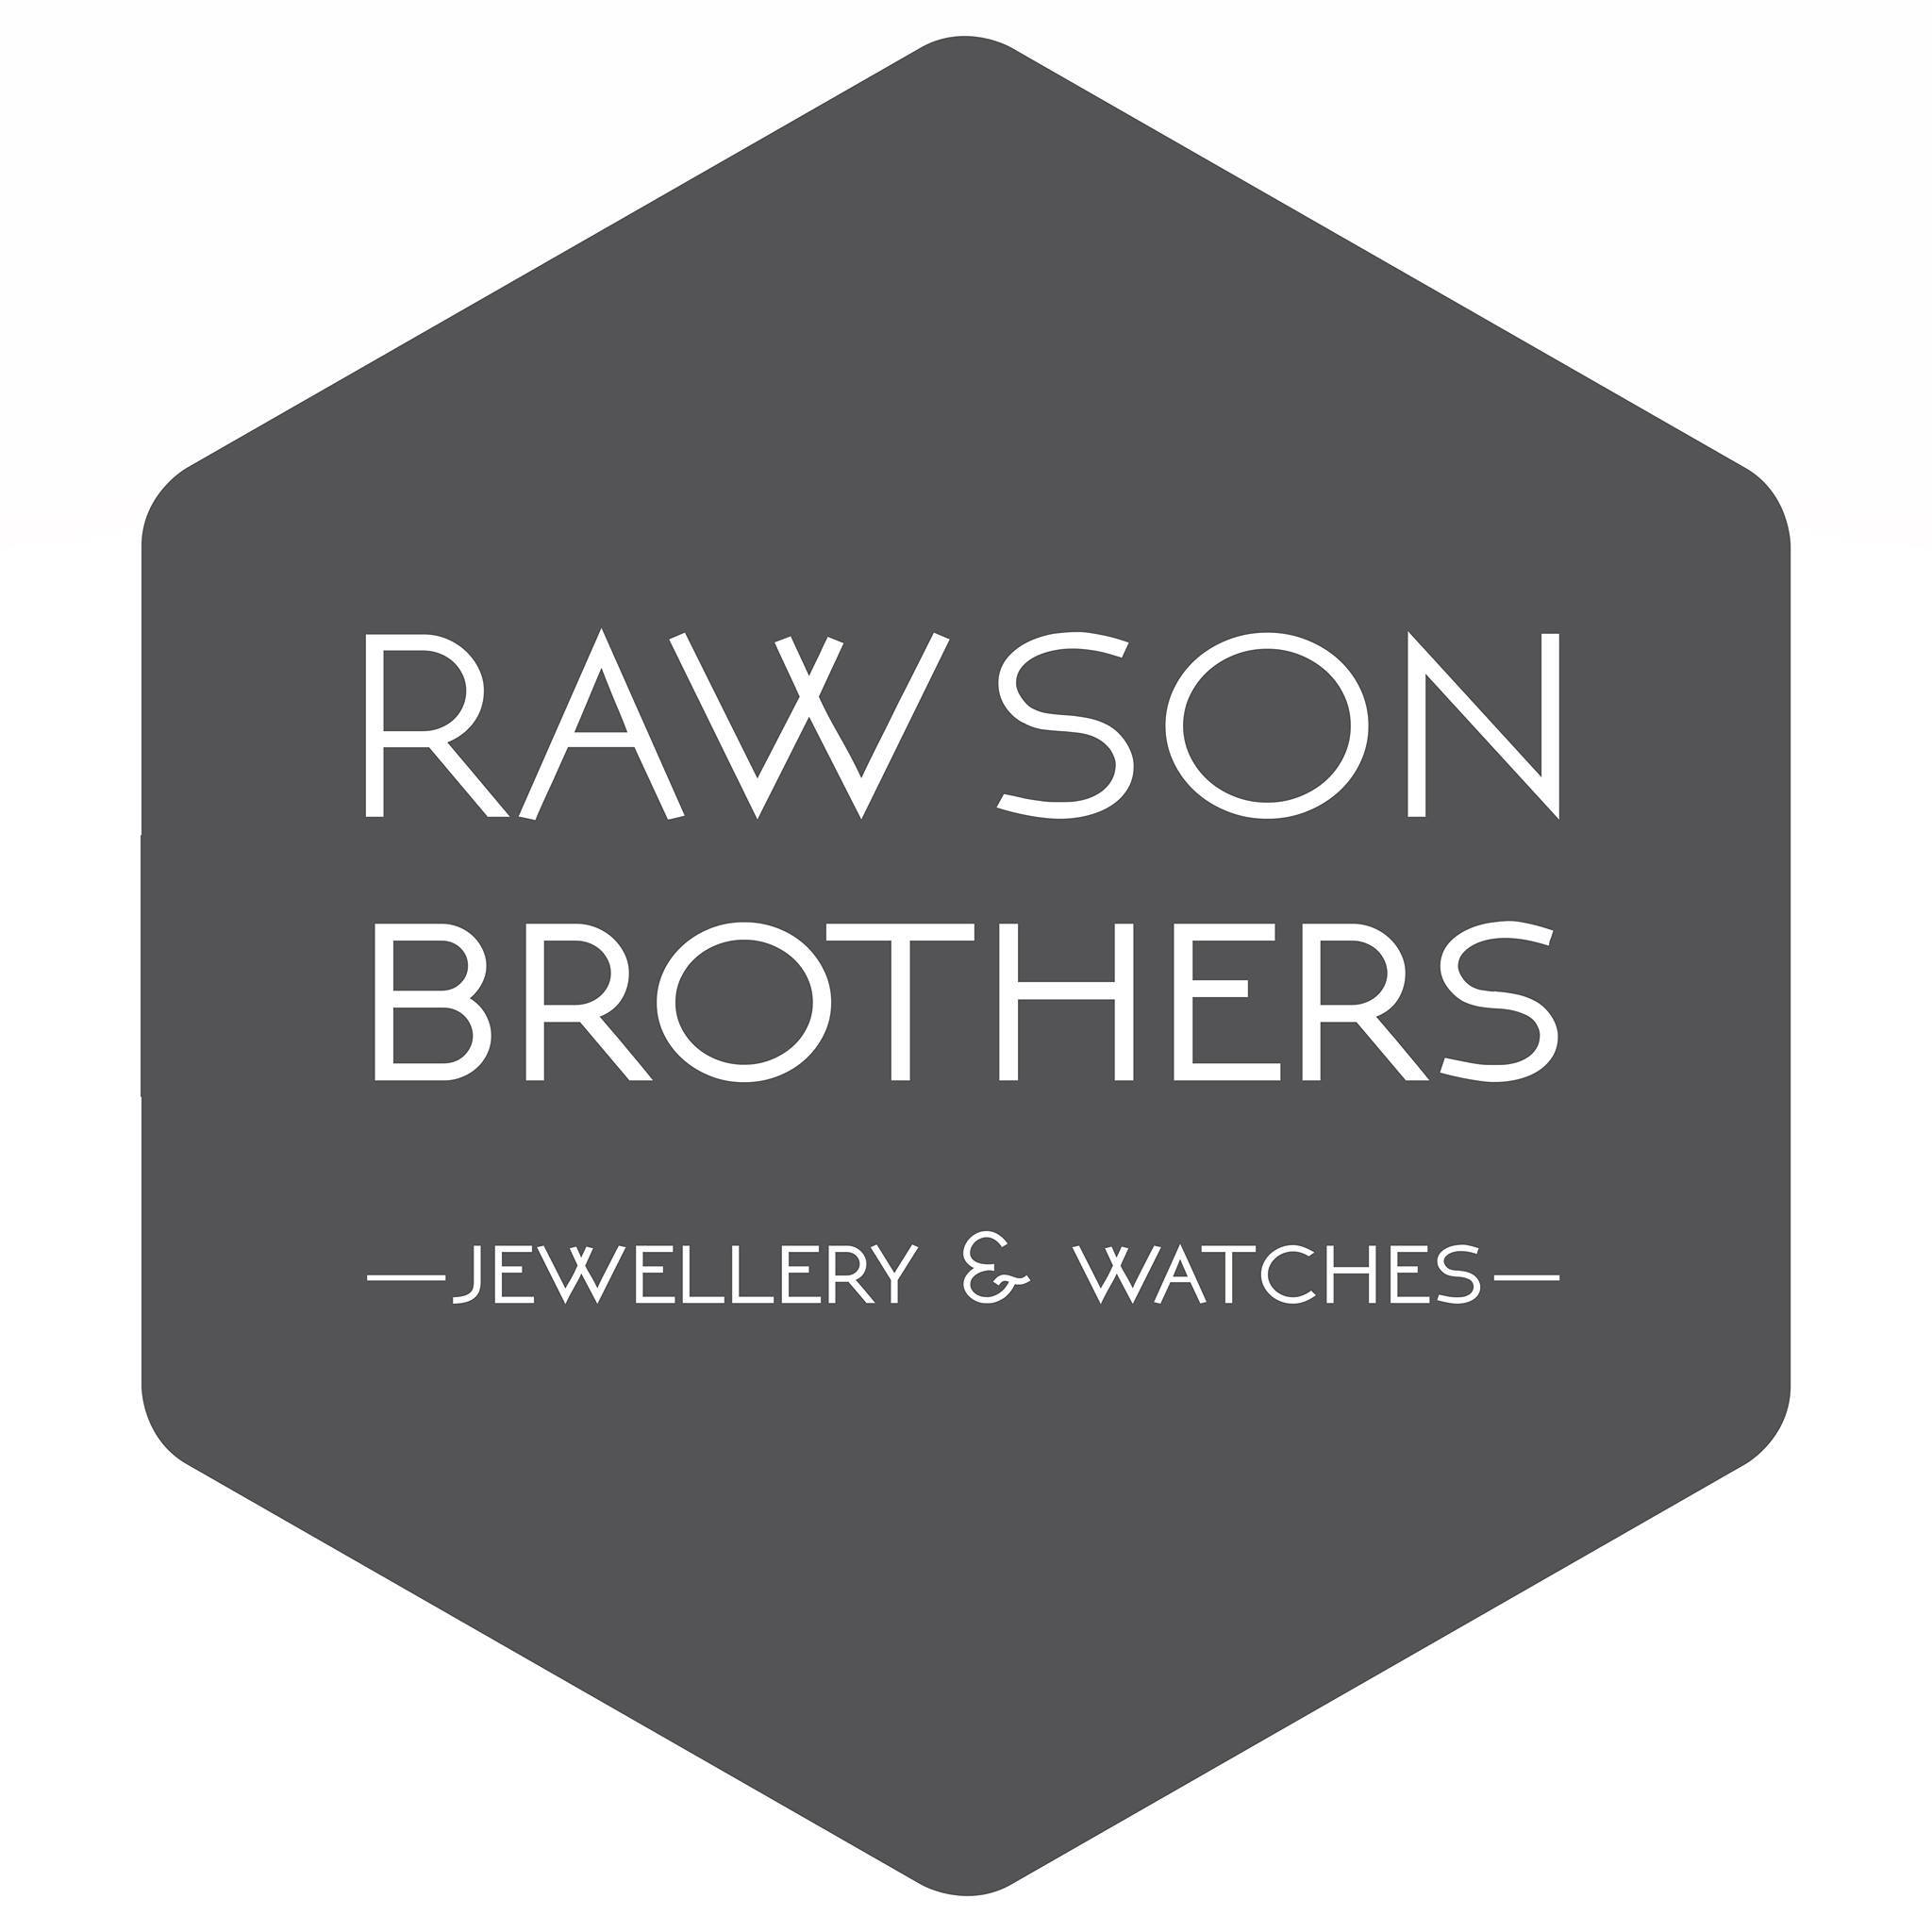 Business logo of Rawson Brothers Jewellery and Watches